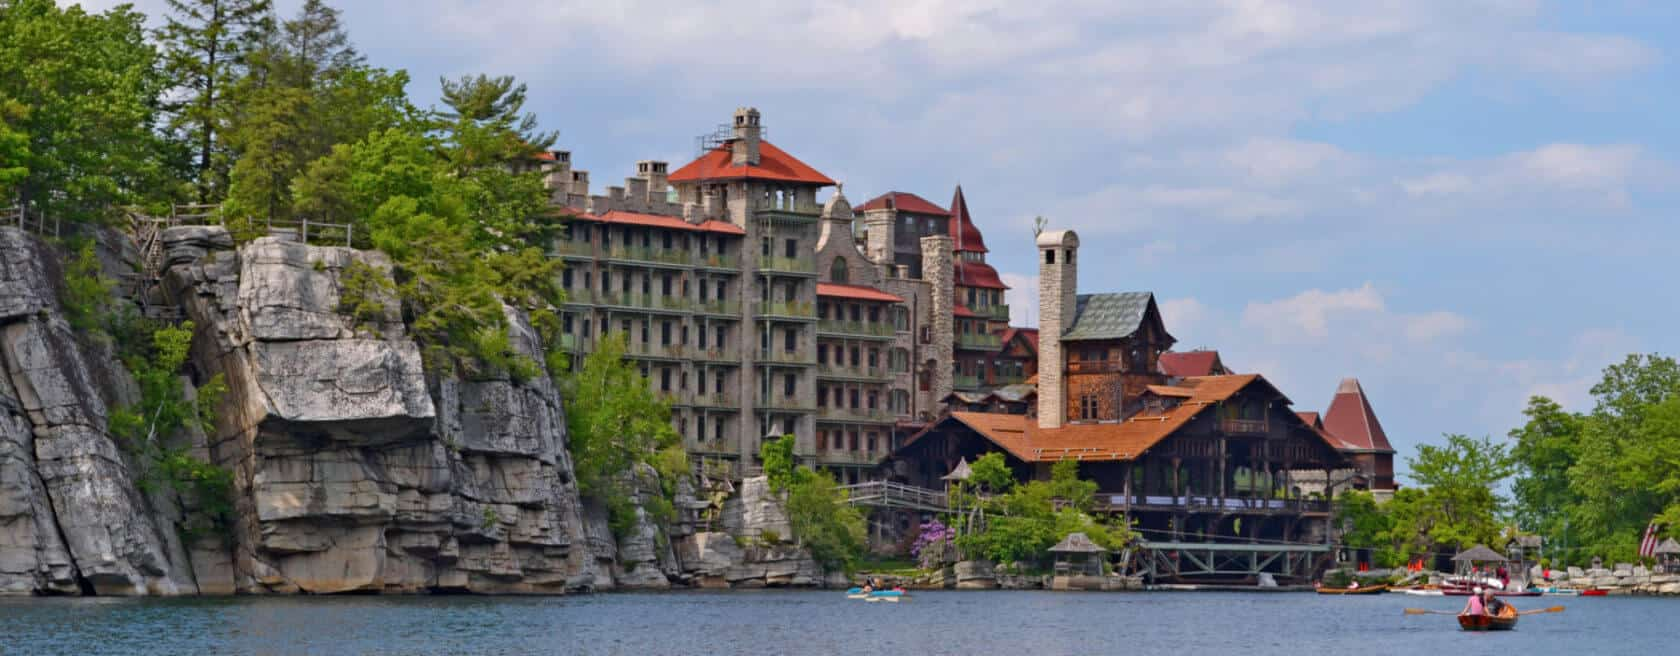 Back view of Mohonk hotel